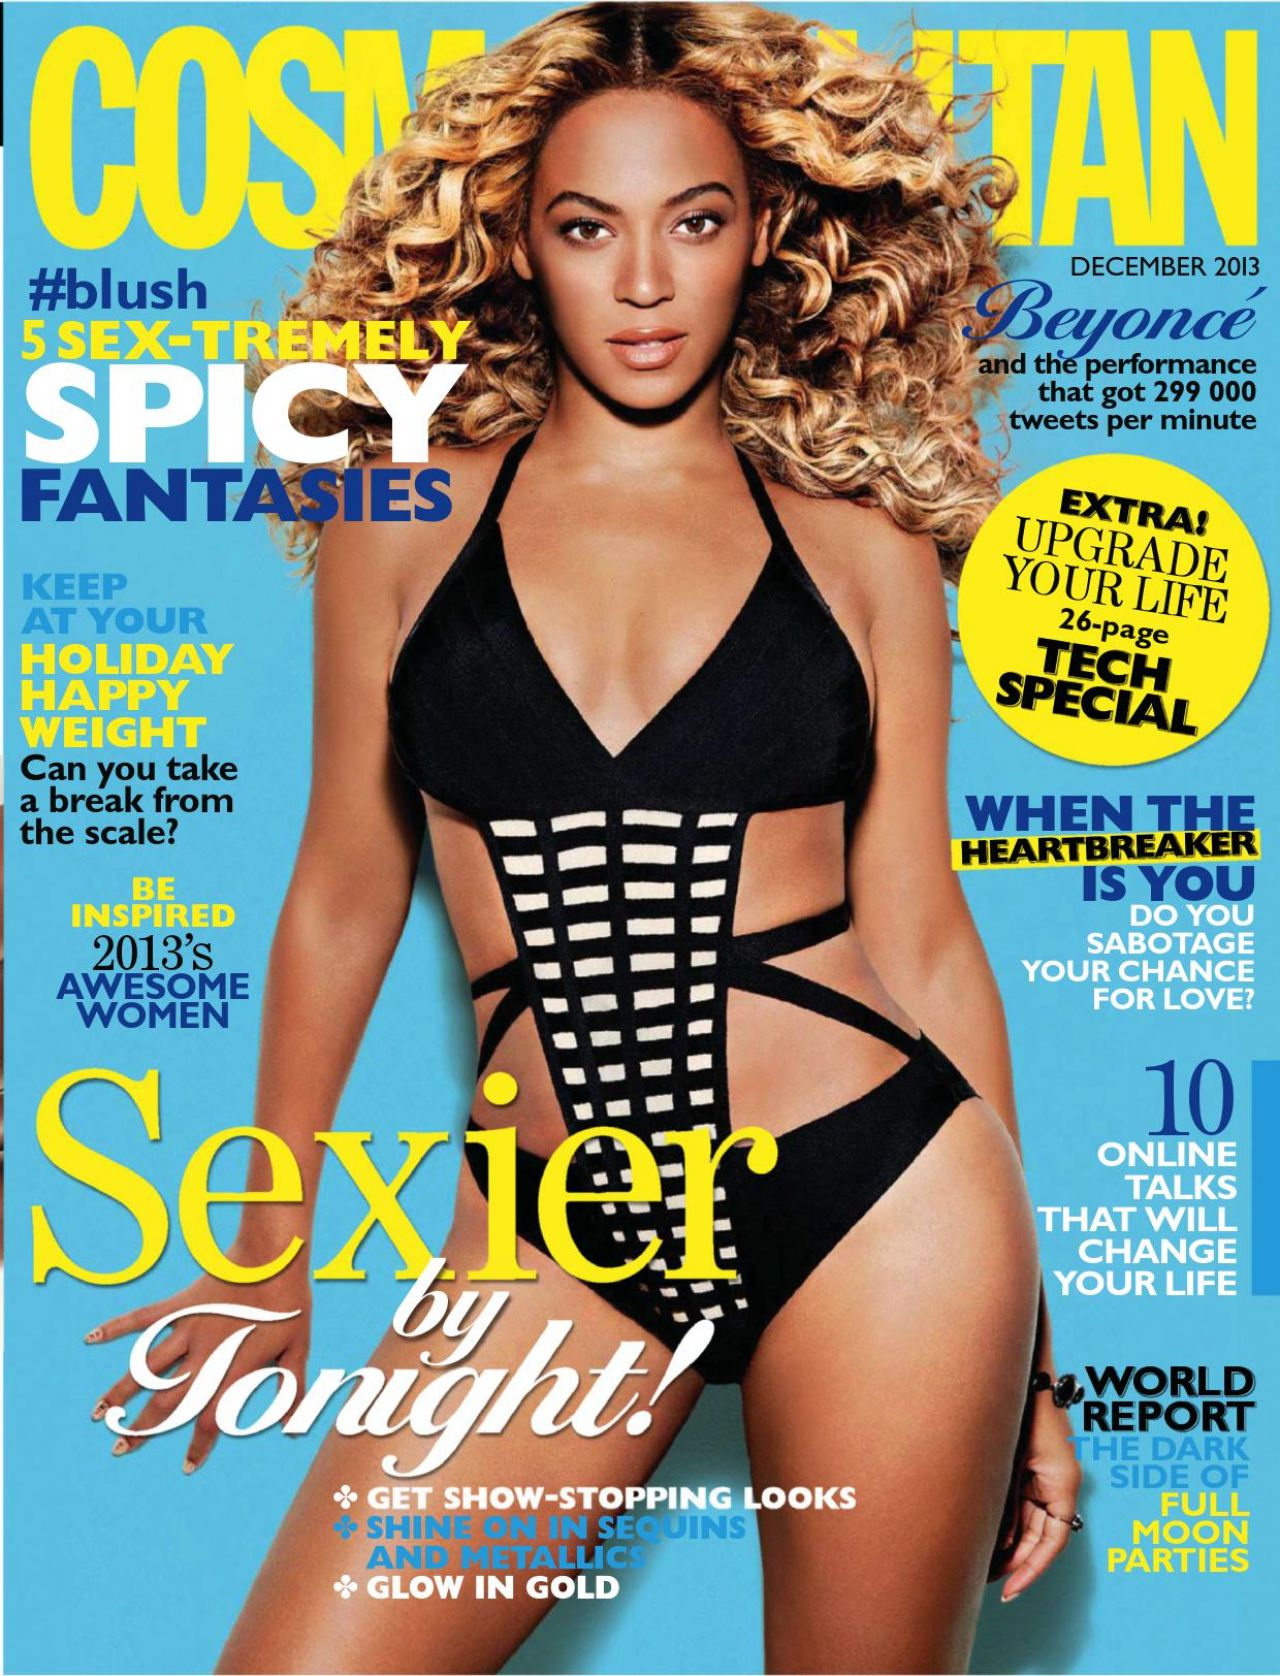 Beyonce Knowles - COSMOPOLITAN Magazine (South Africa) - December 2013 Issue